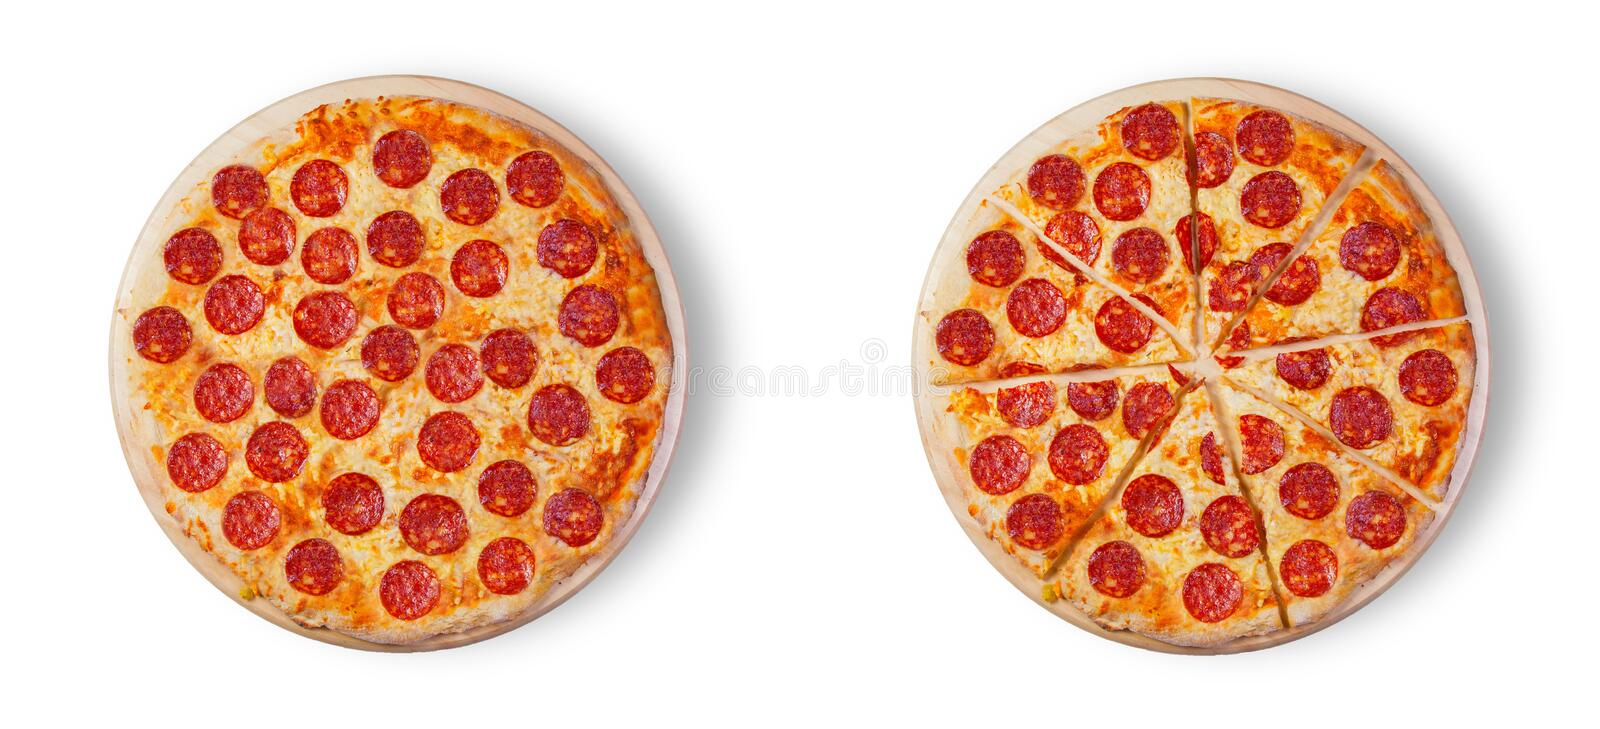 Pizza pepperoni on the white background. vector illustration